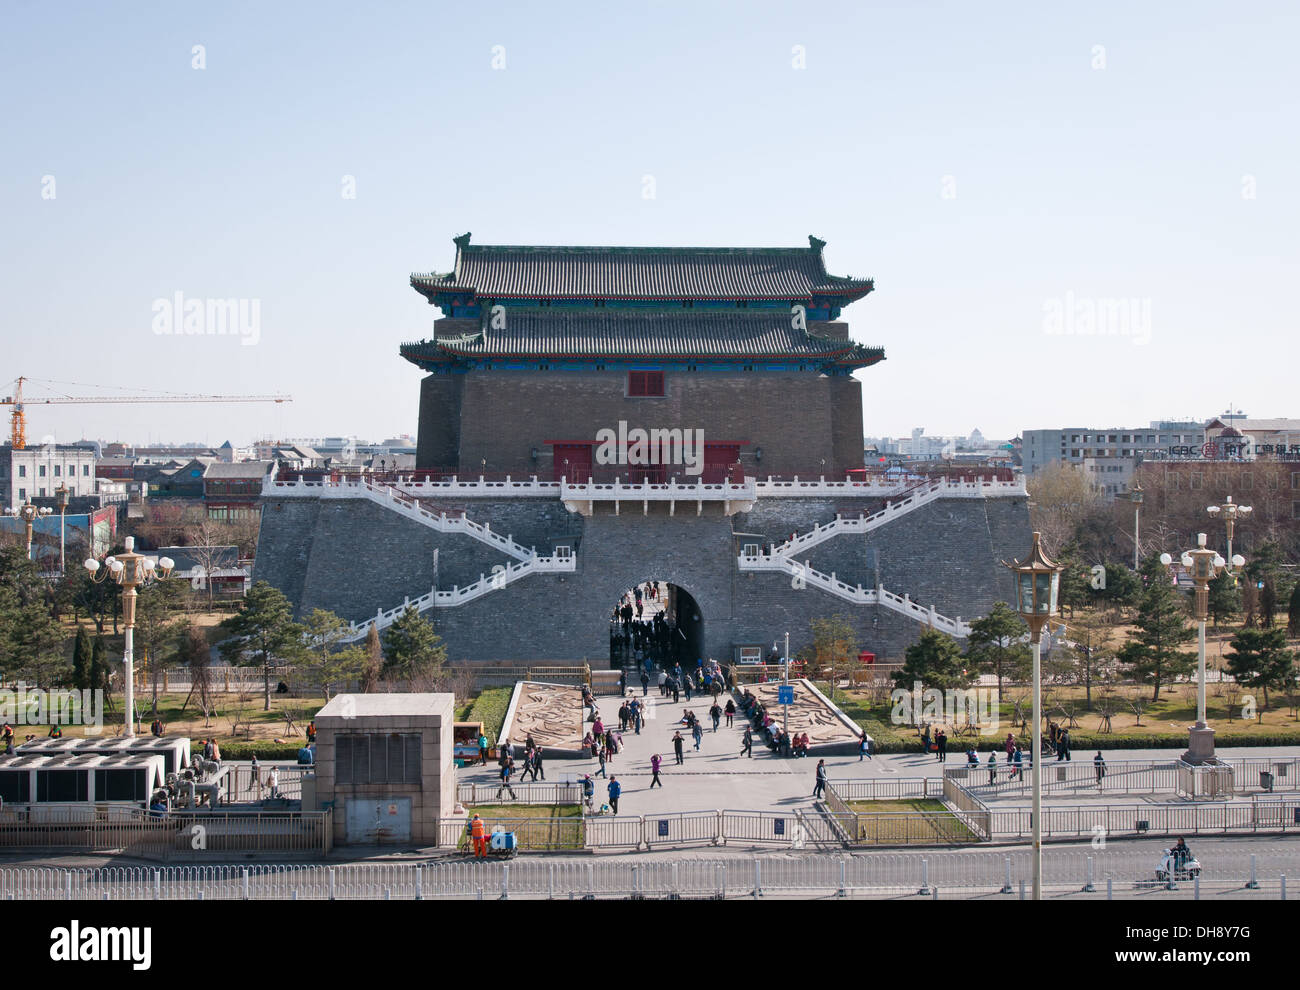 Arrow Tower (Jian Lou) located in south part of Tiananmen Square in Beijing, China - Stock Image